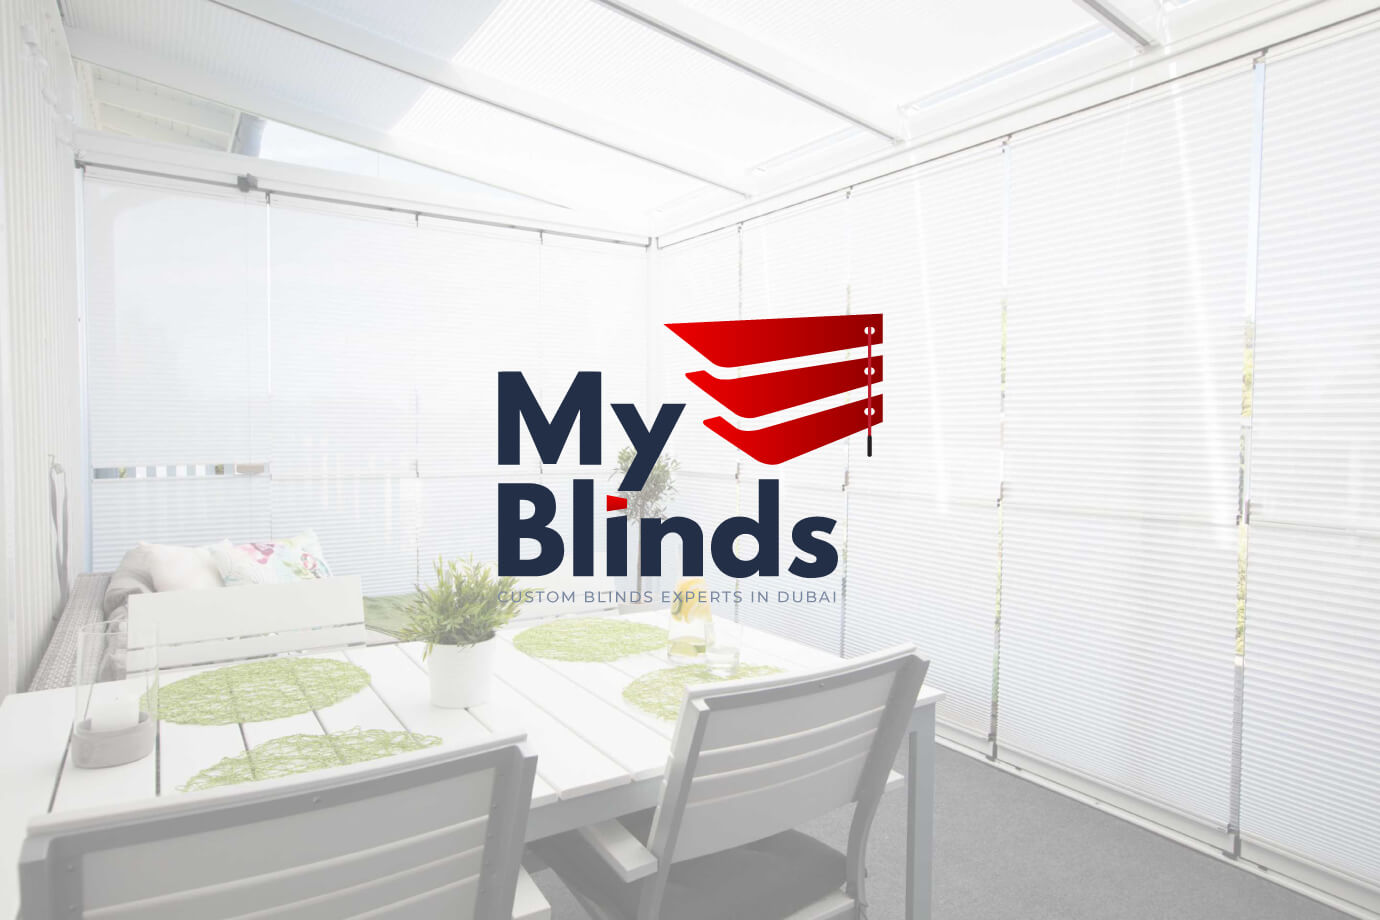 My Blinds Logo by Freelance Graphic Designer SAJID SULAIMAN